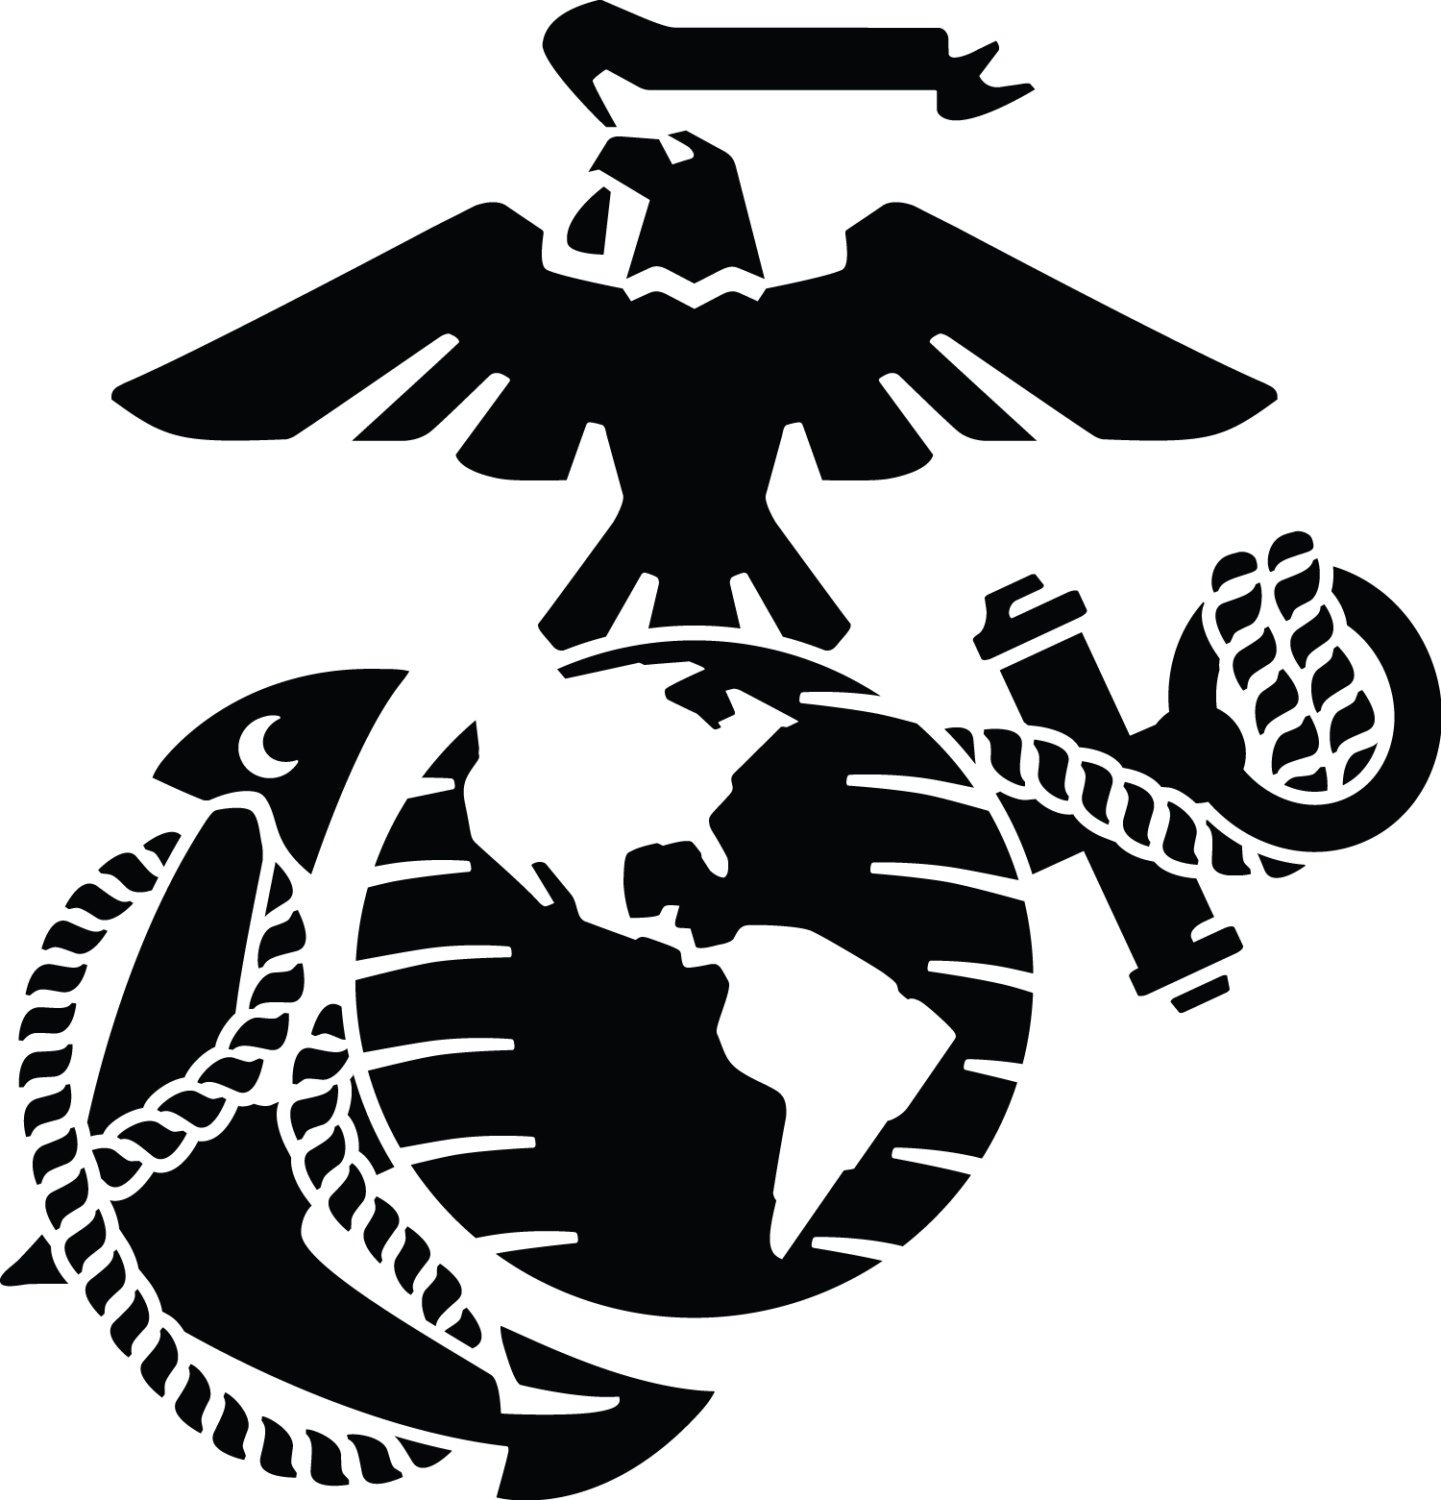 Us marine corps clipart free 2 » Clipart Portal clipart freeuse library